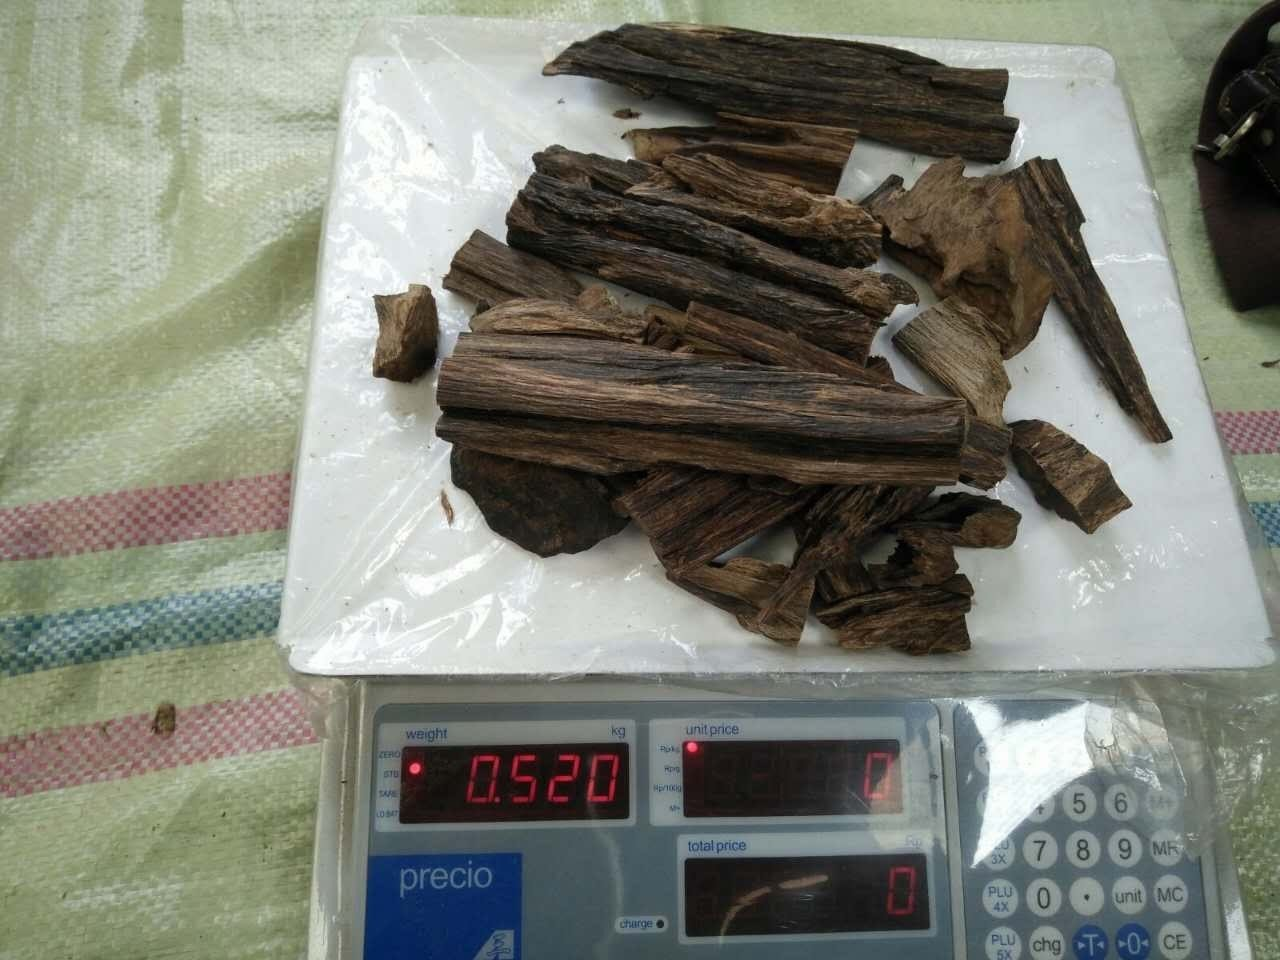 agarwood chip Supreme Sinking Borneo Agarwood 500g. Superb quality from deep jungle. Like no others